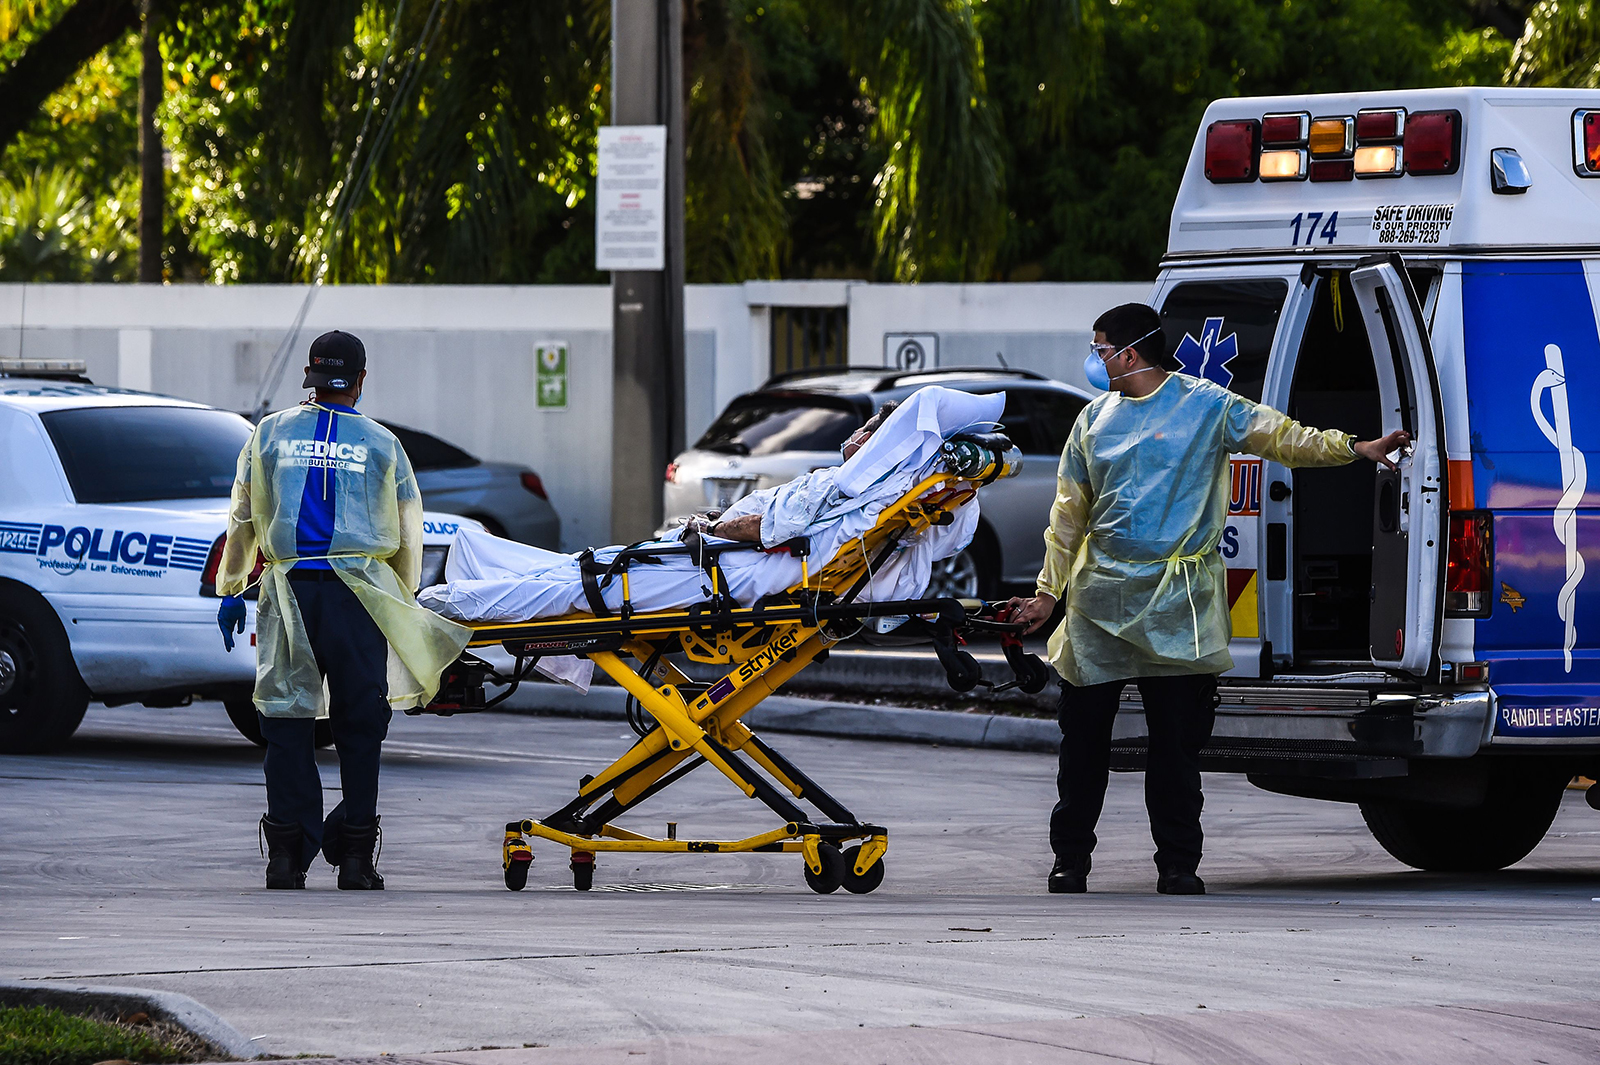 Medics transfer a patient on a stretcher from an ambulance outside Coral Gables Hospital near Miami on July 30.